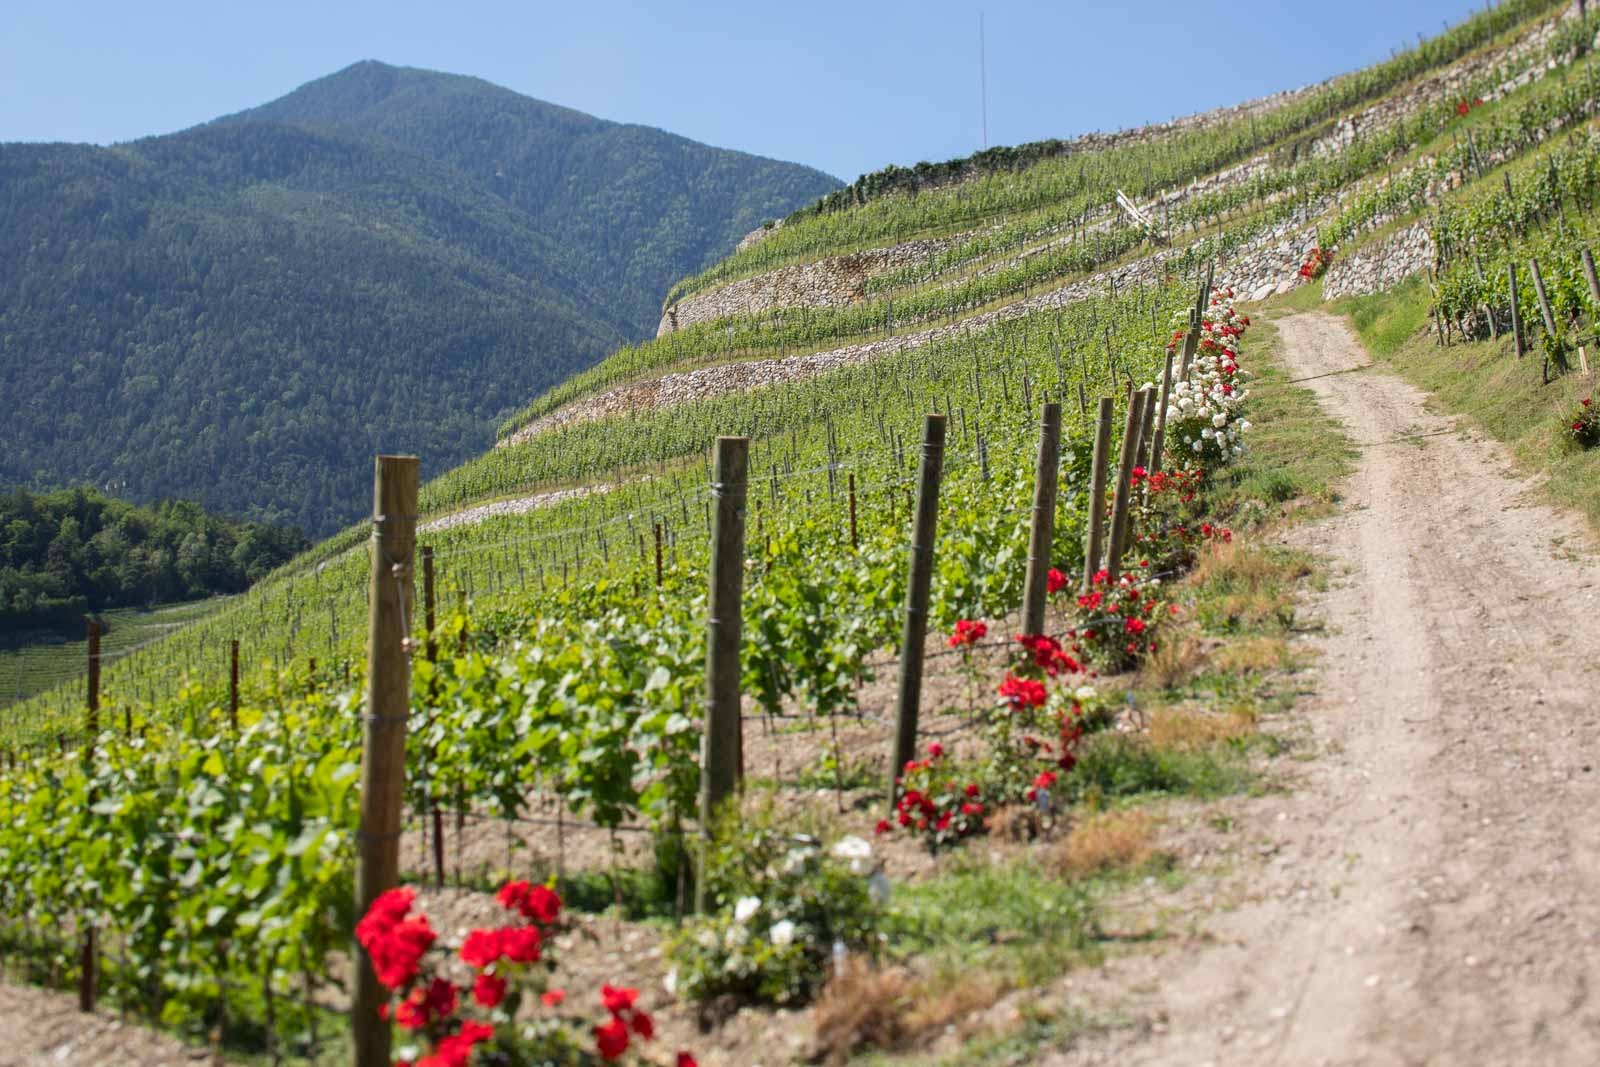 The spectacularly steep vineyard of Abbazia di Novacella. ©Kevin Day/Opening a Bottle